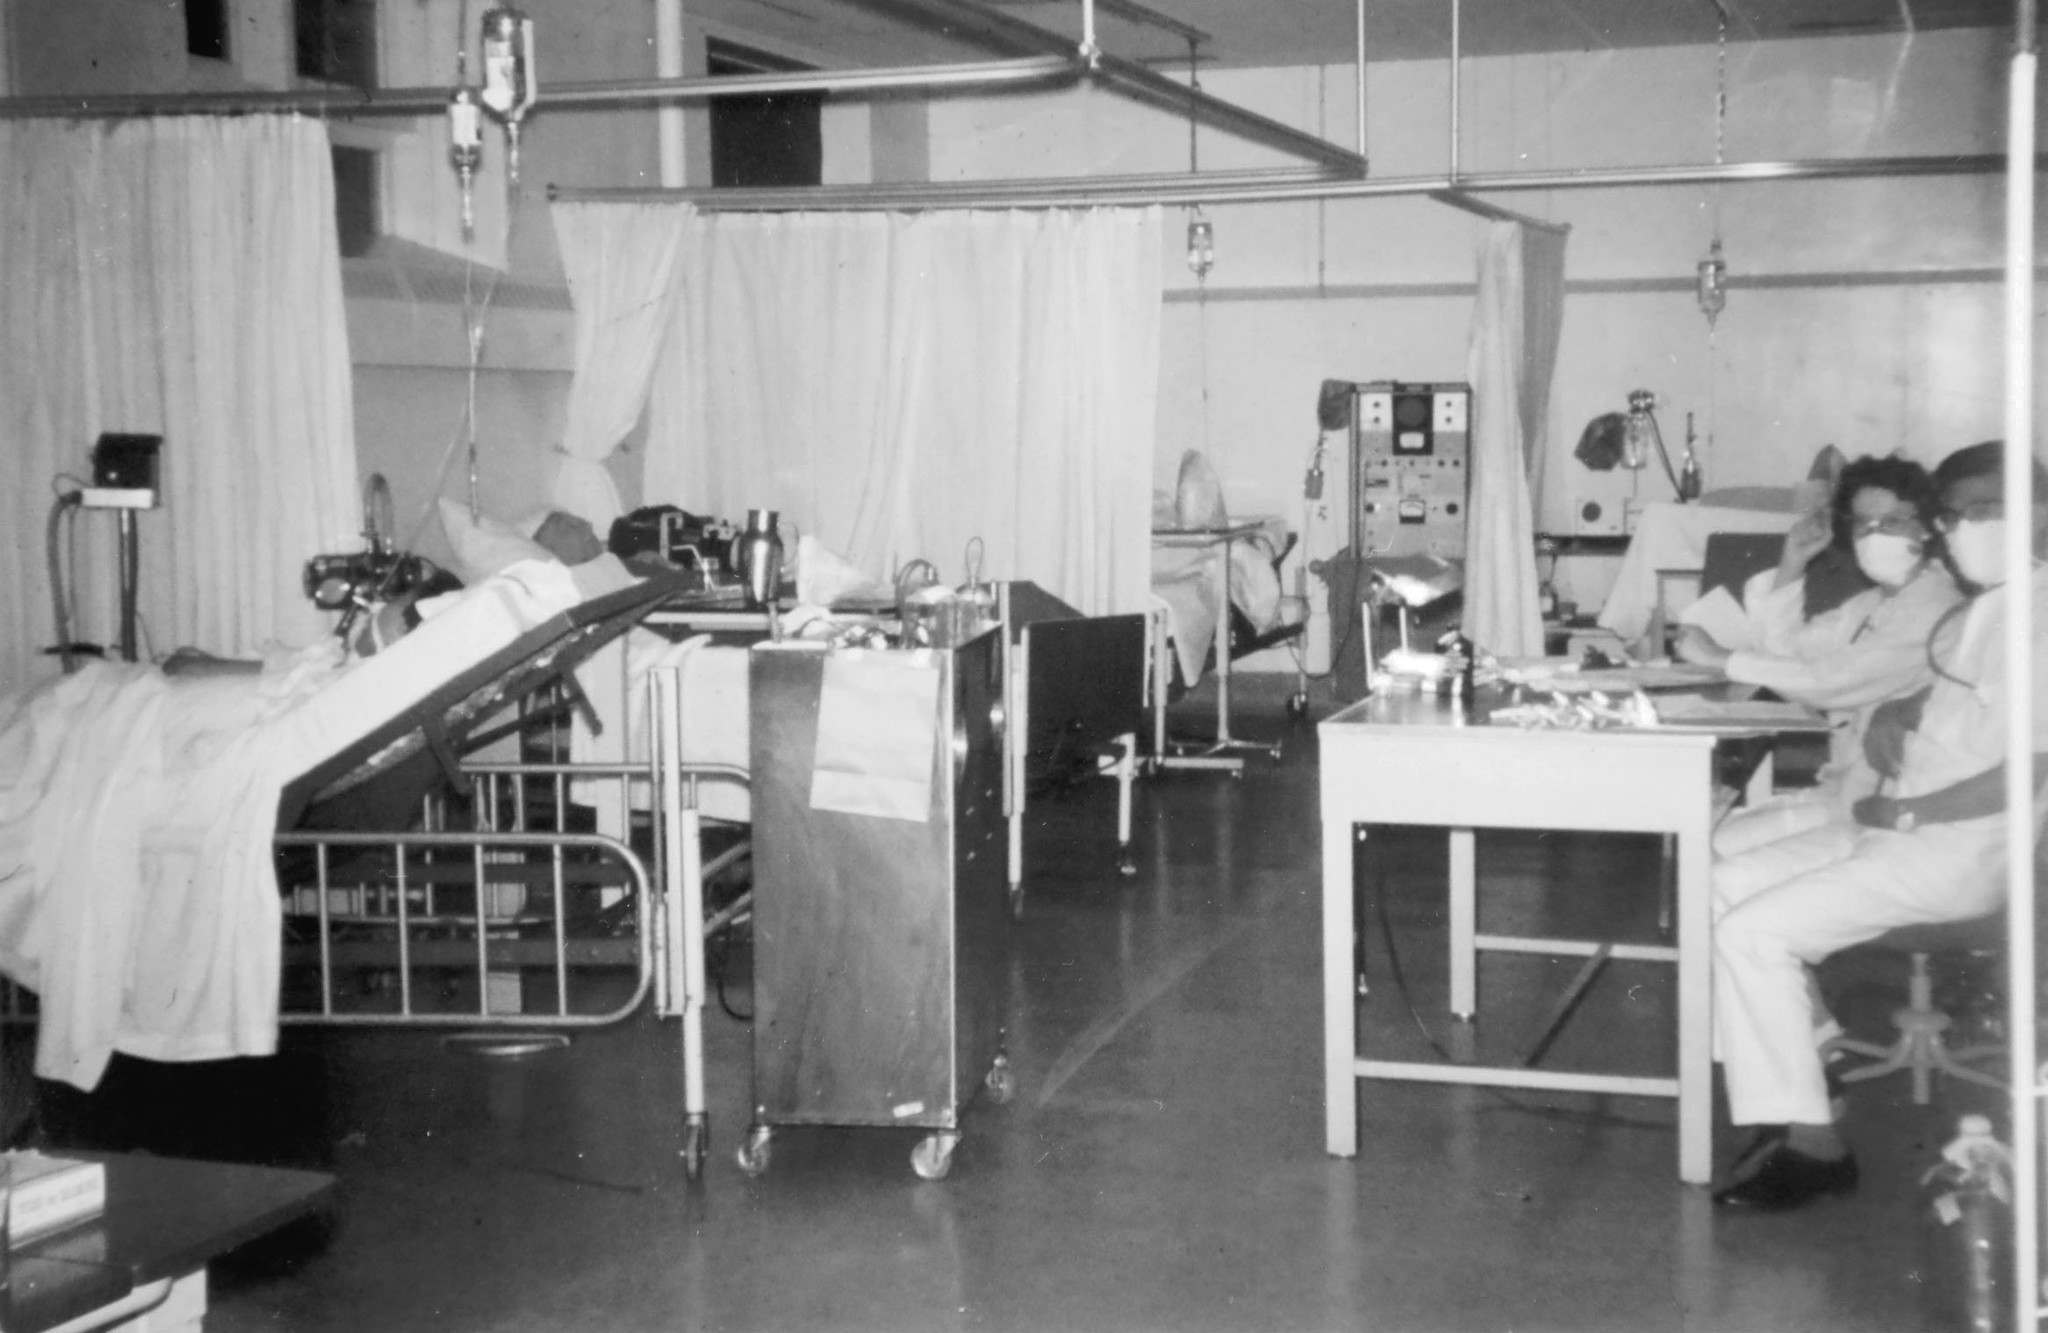 Harvey Cramp remembers observing exhausted nurses and doctors rushing in and out of the unit.